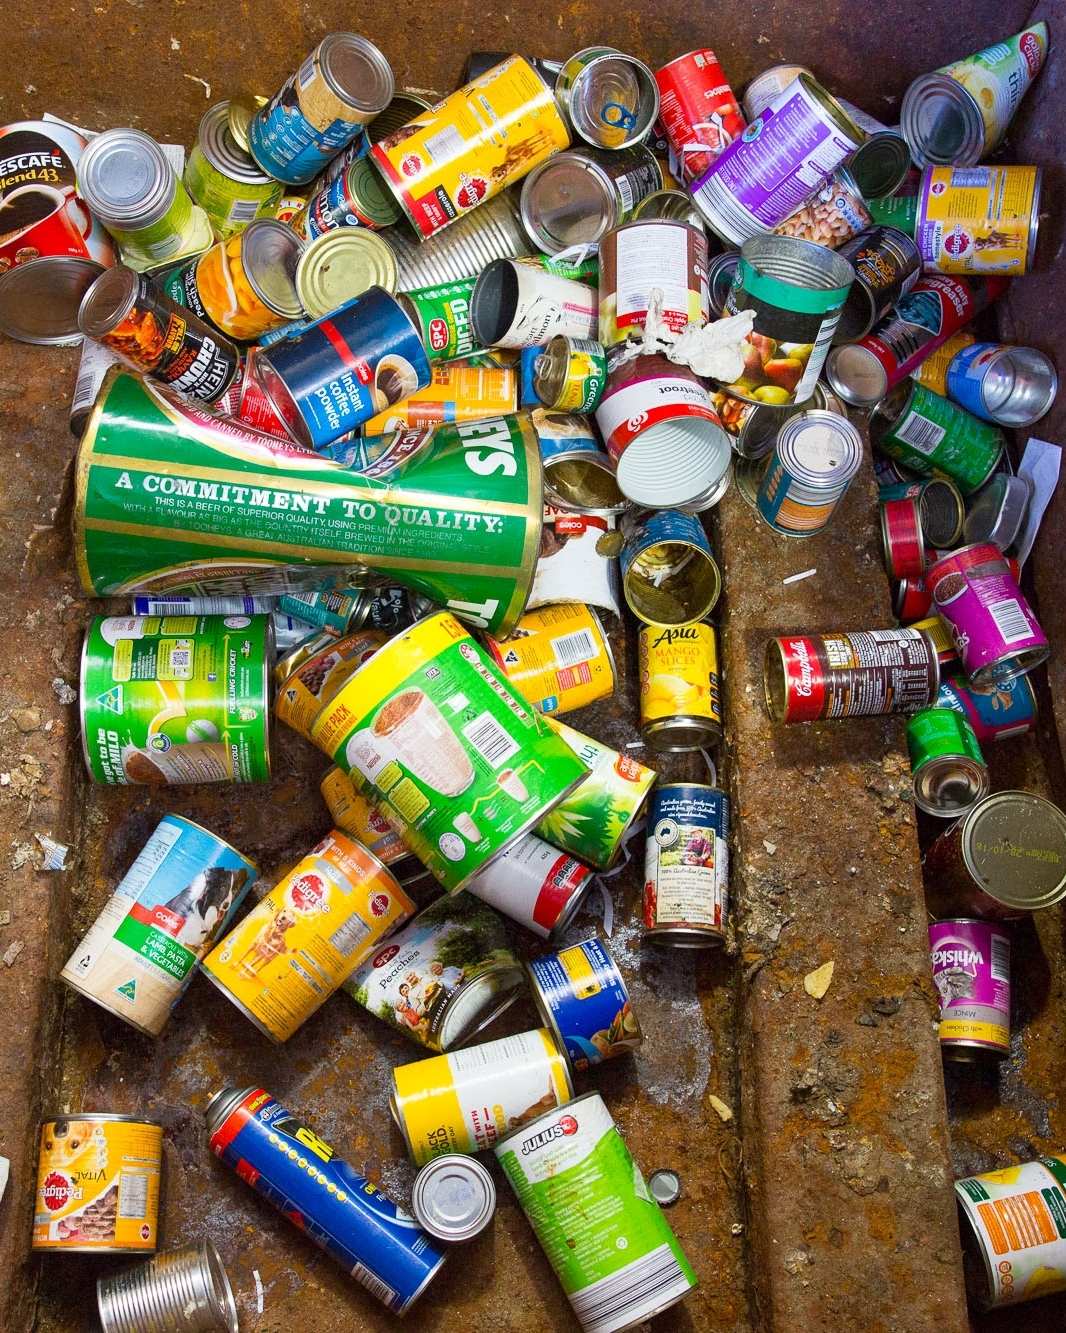 Tin Cans: 100 Years - Again, tin cans are easily recycled. We're talking all your tinned fruit and veg, baked beans and tinned spaghetti, every time you throw them in the wrong bin it's taking a century to break down! Just rinse them out and pop them in the recycle bin.